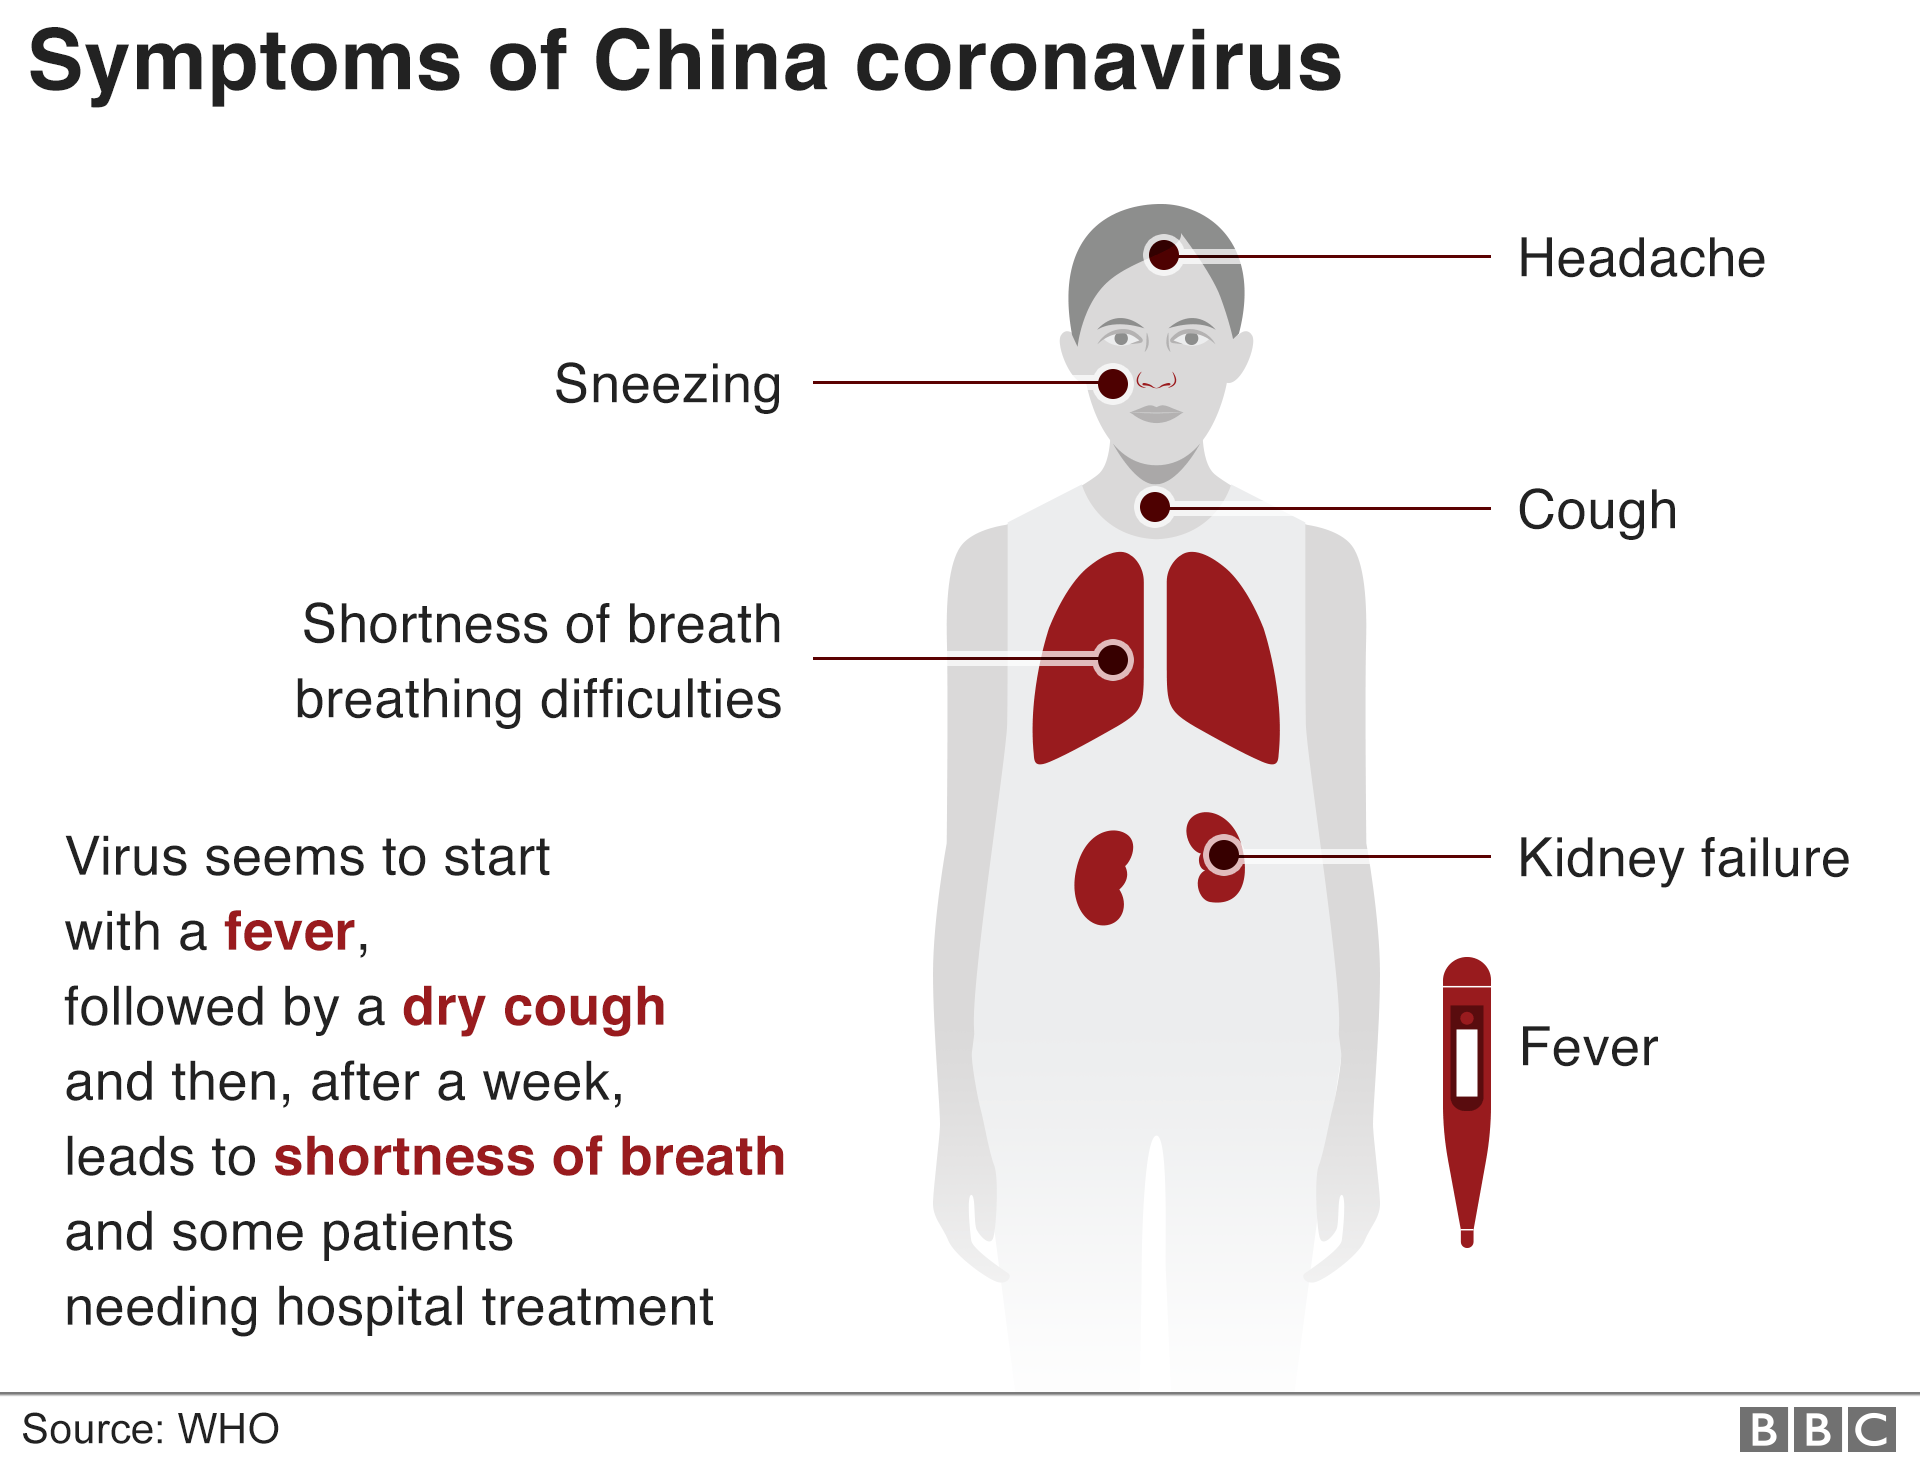 Infographic showing the symptoms of the coronavirus